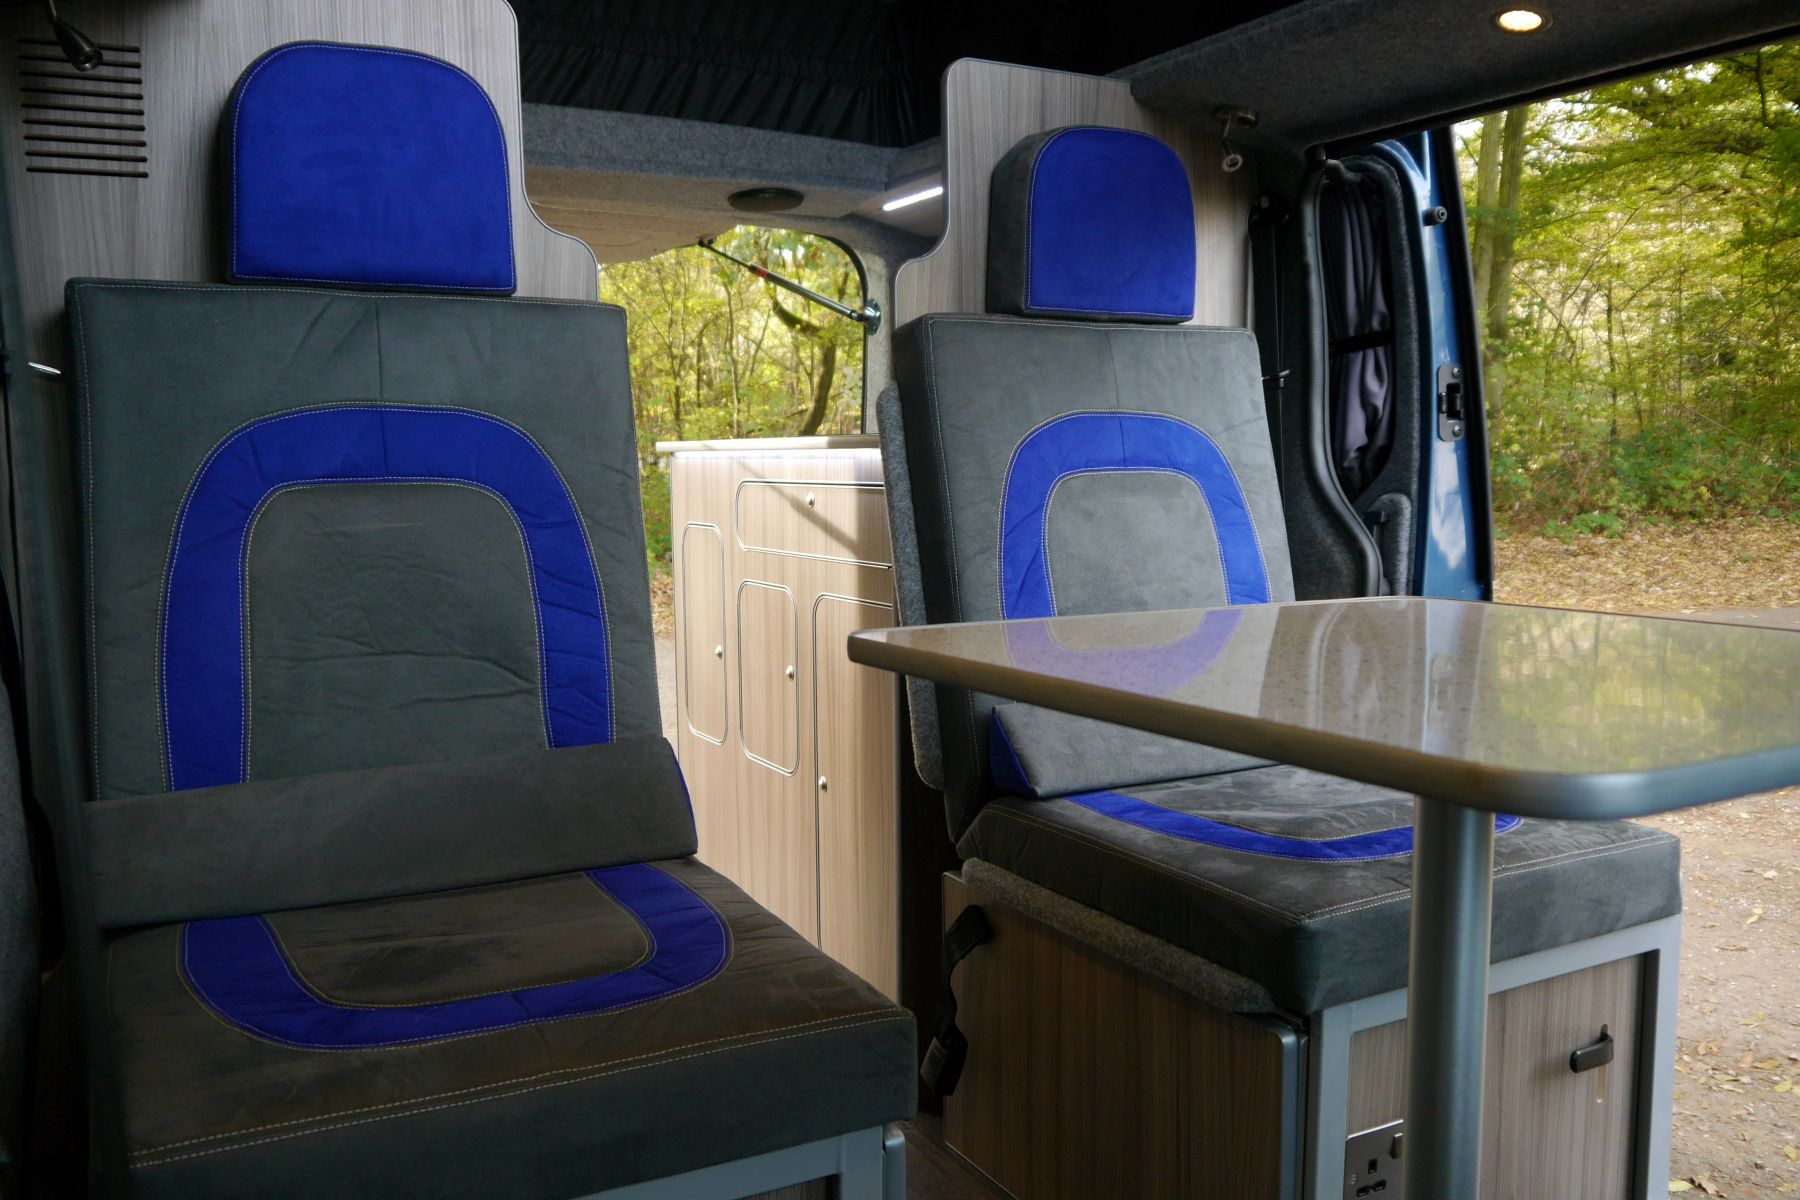 Blue Paradise Sussex Campervans for sale Rear seats Boyriven fabric.JPG